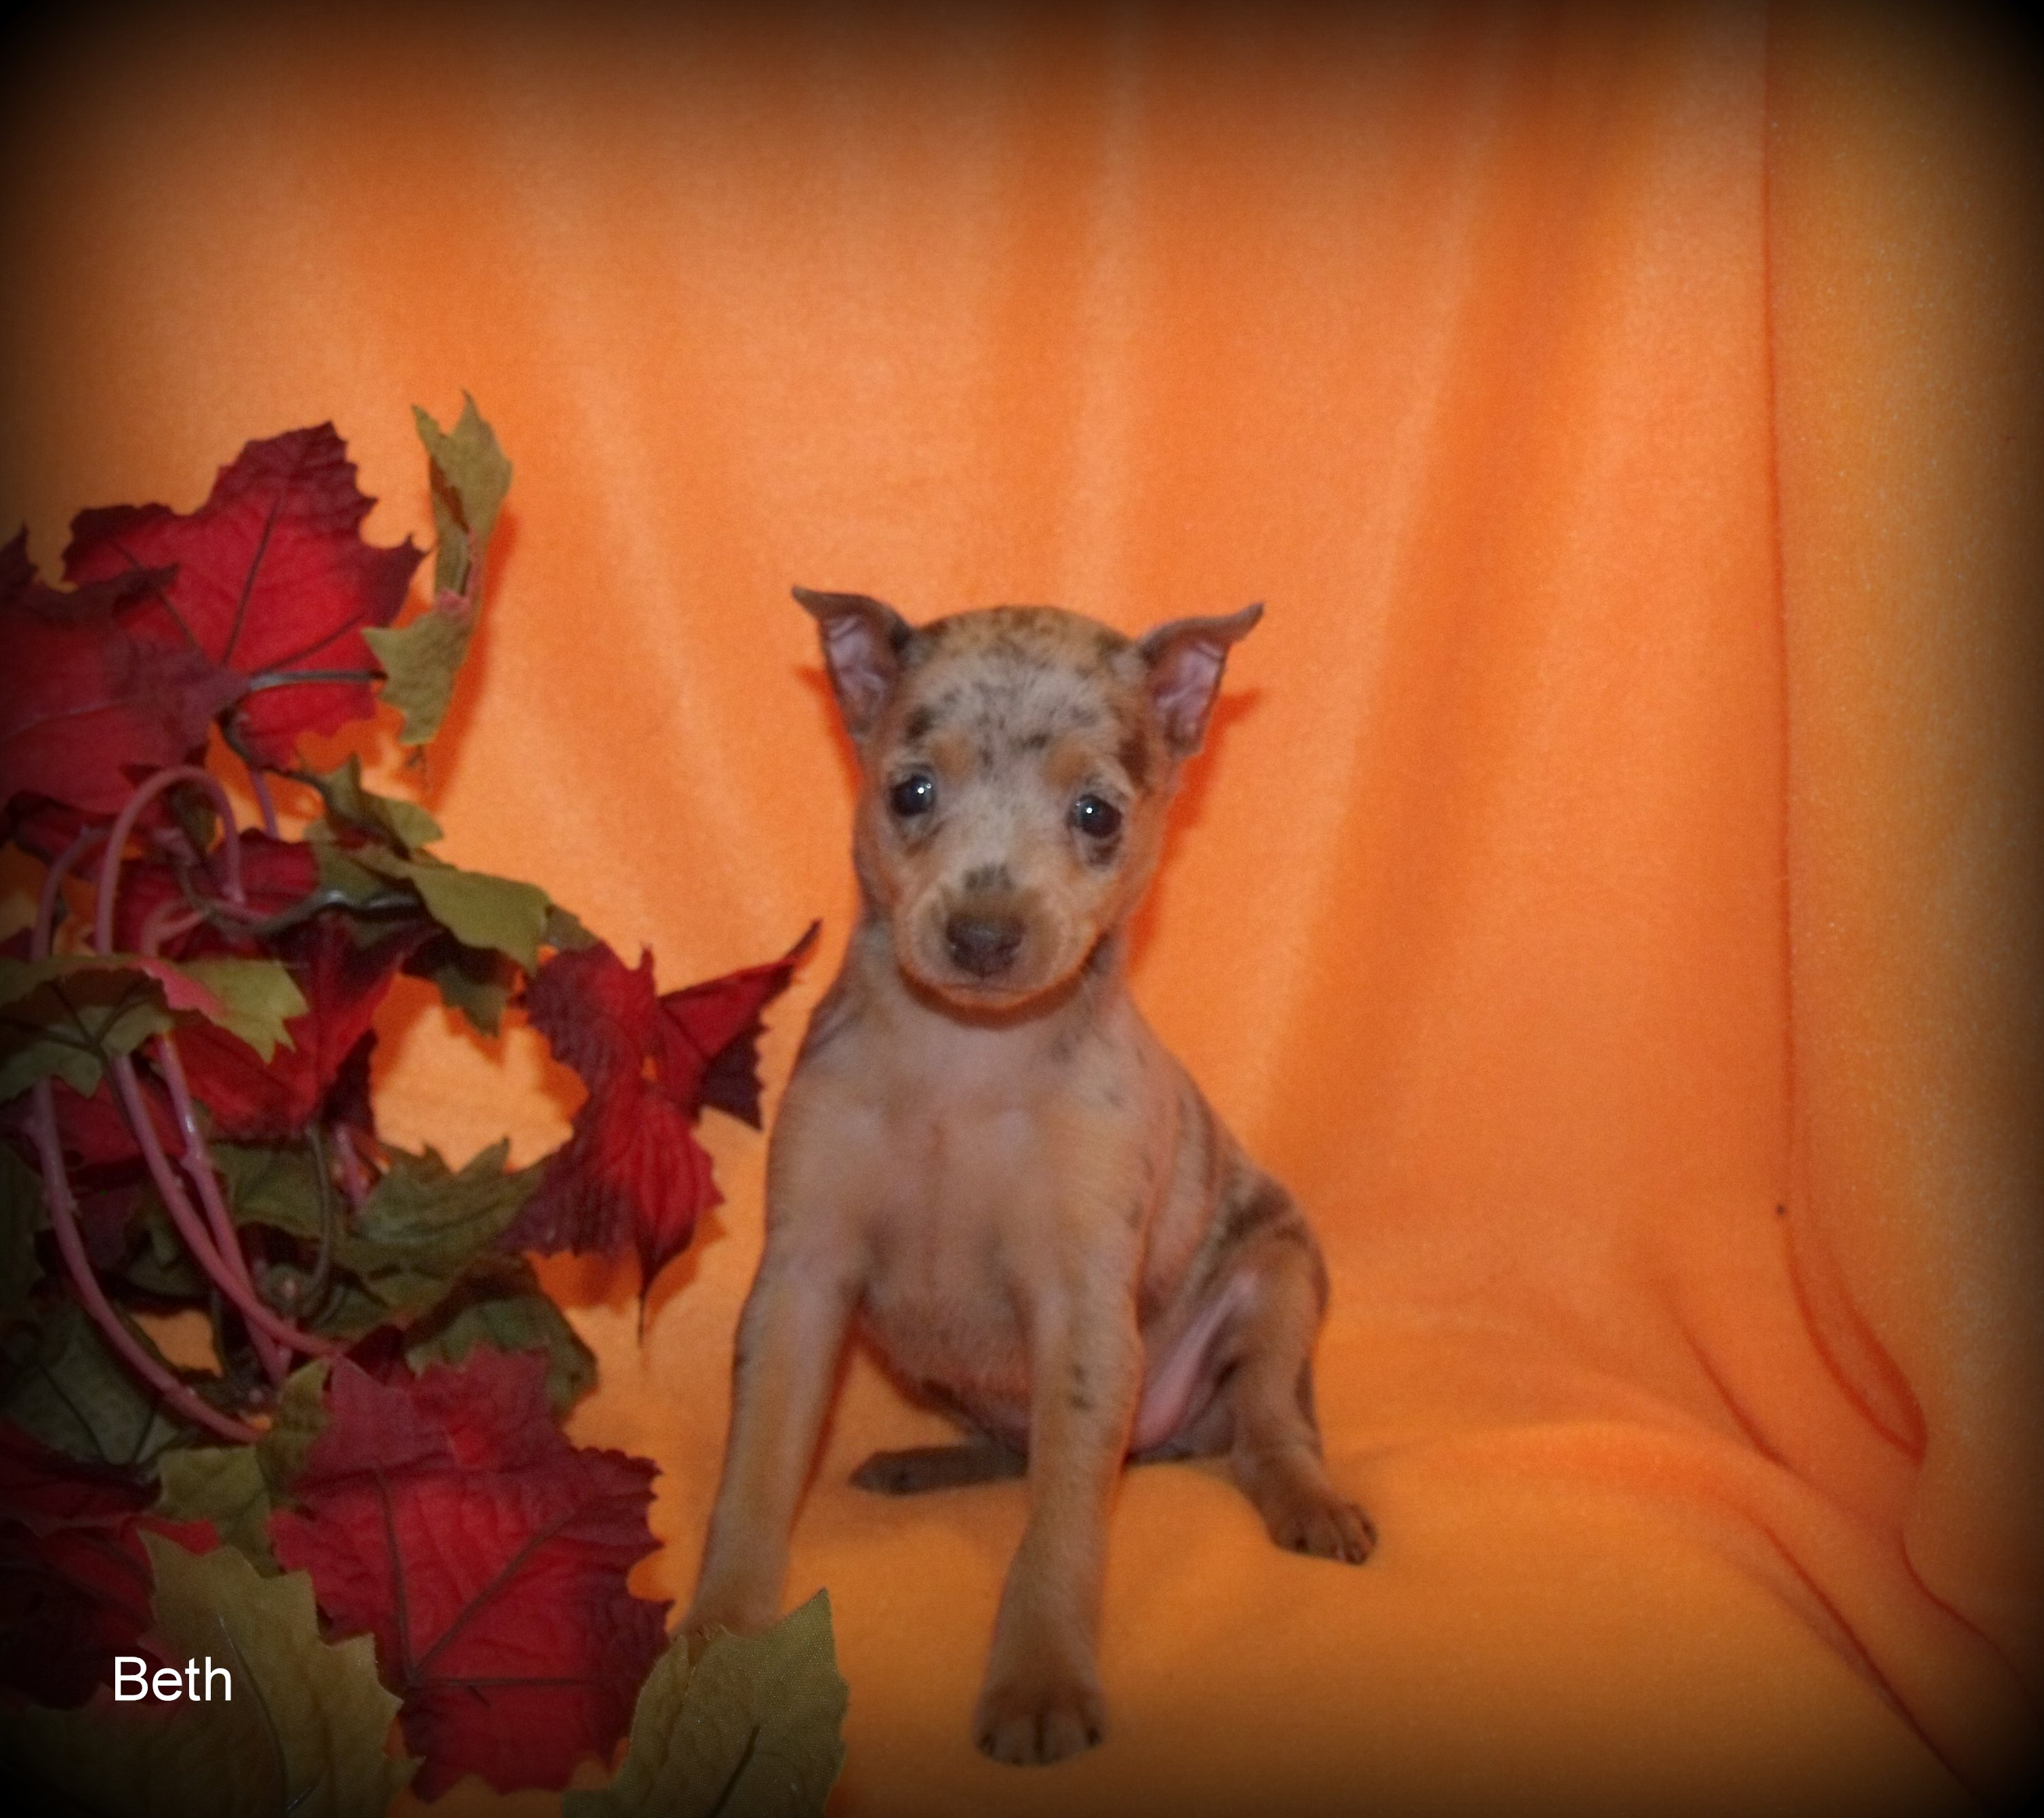 Gallery images and information: Blue Min Pin Puppies For Sale